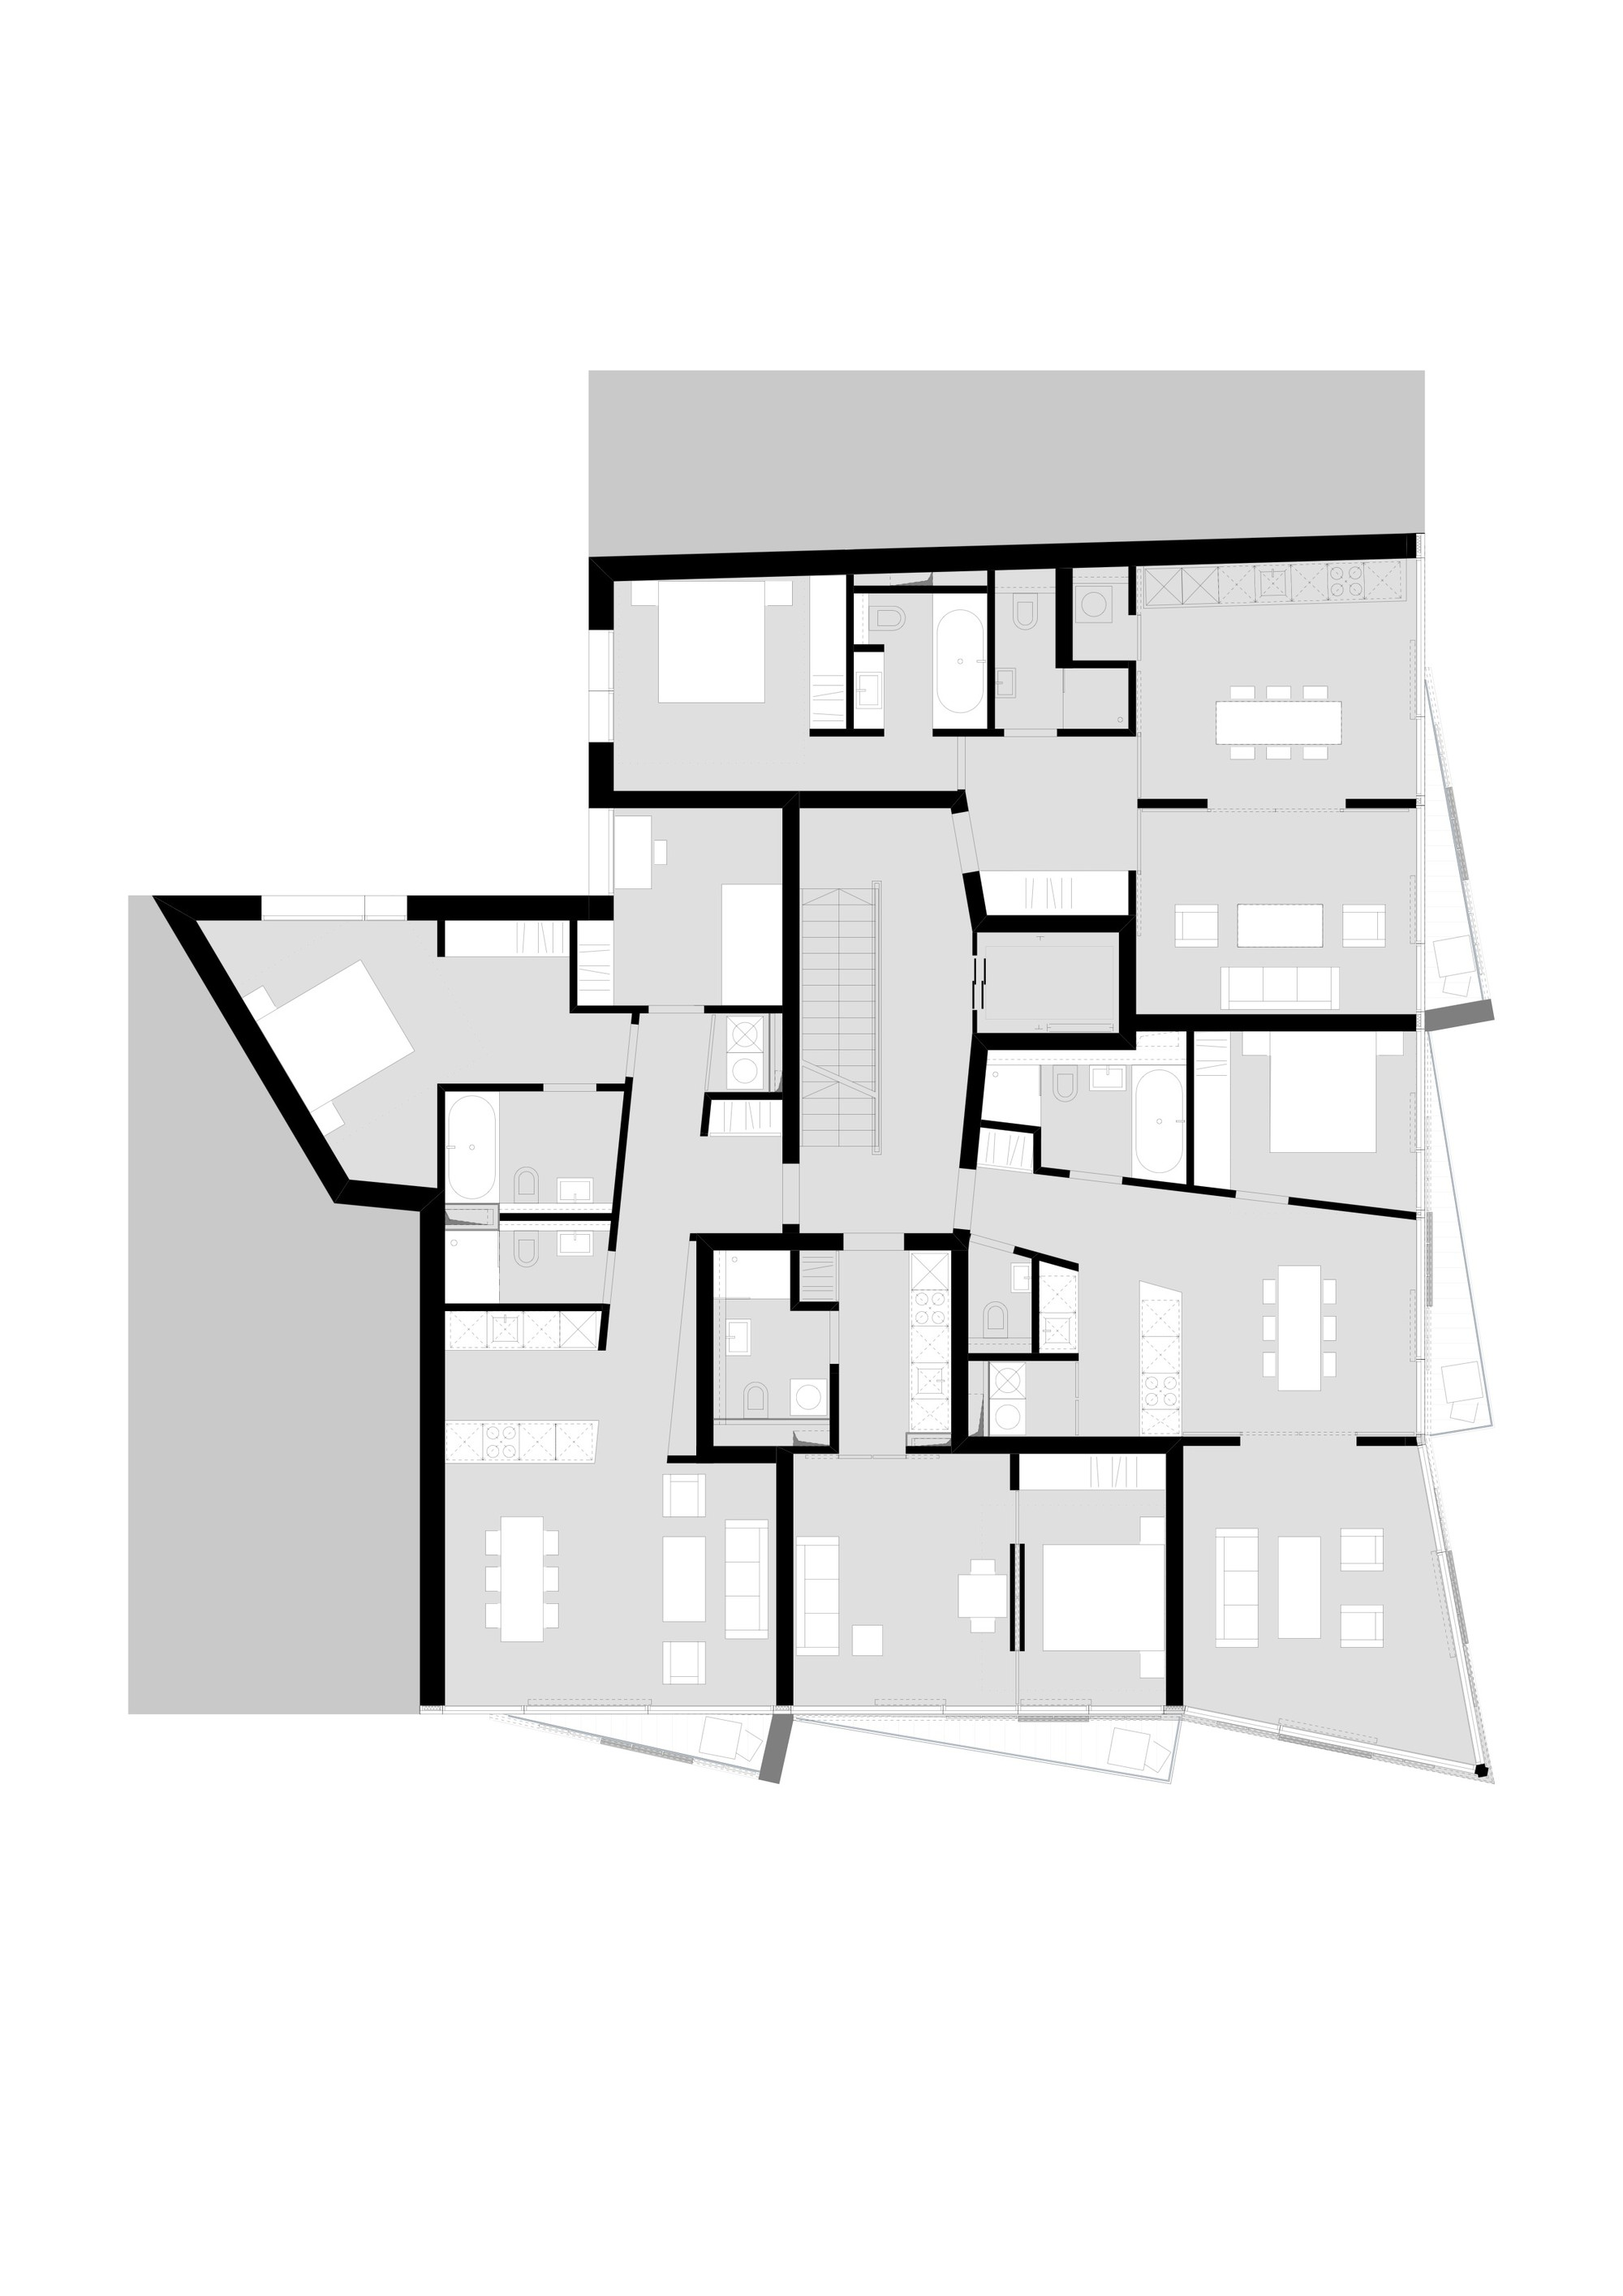 Gallery of apartments charlotte michels architekturb ro 12 for 12th floor apartments odessa